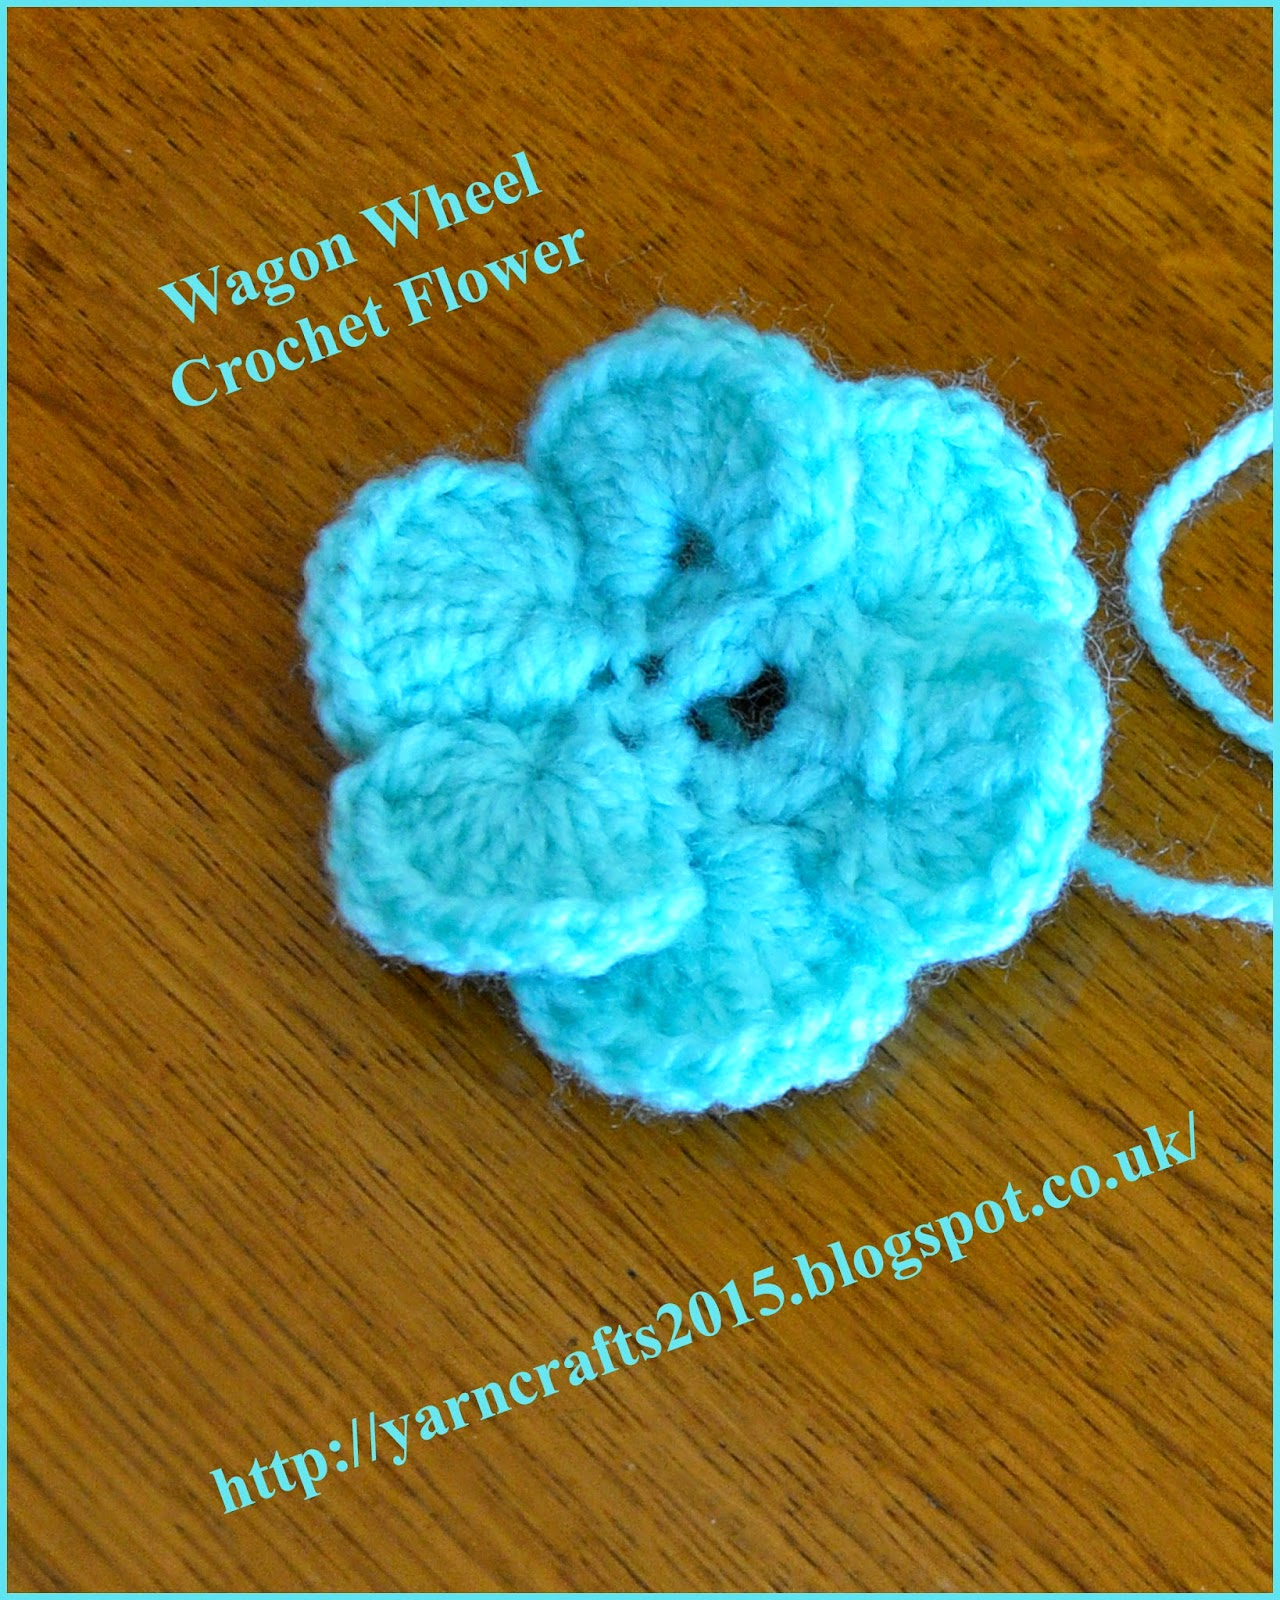 how to crochet a wagon wheel flower